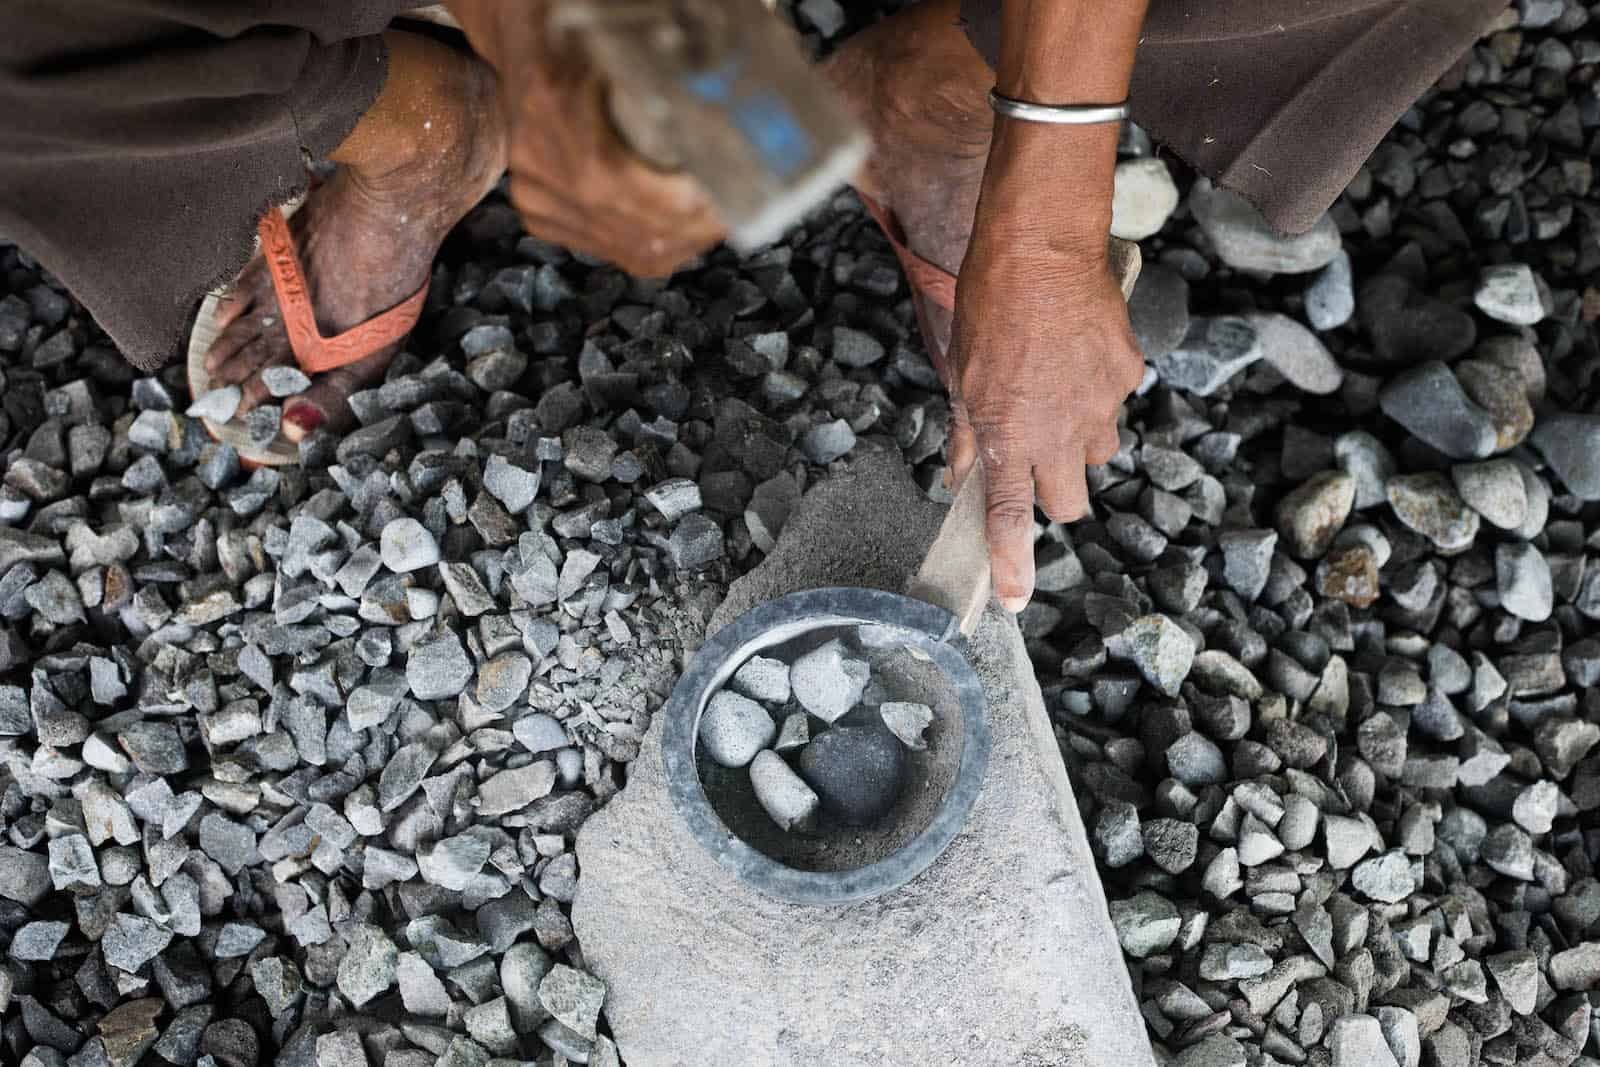 A hand holds a hammer, poised over a group of pebbles on a stone.